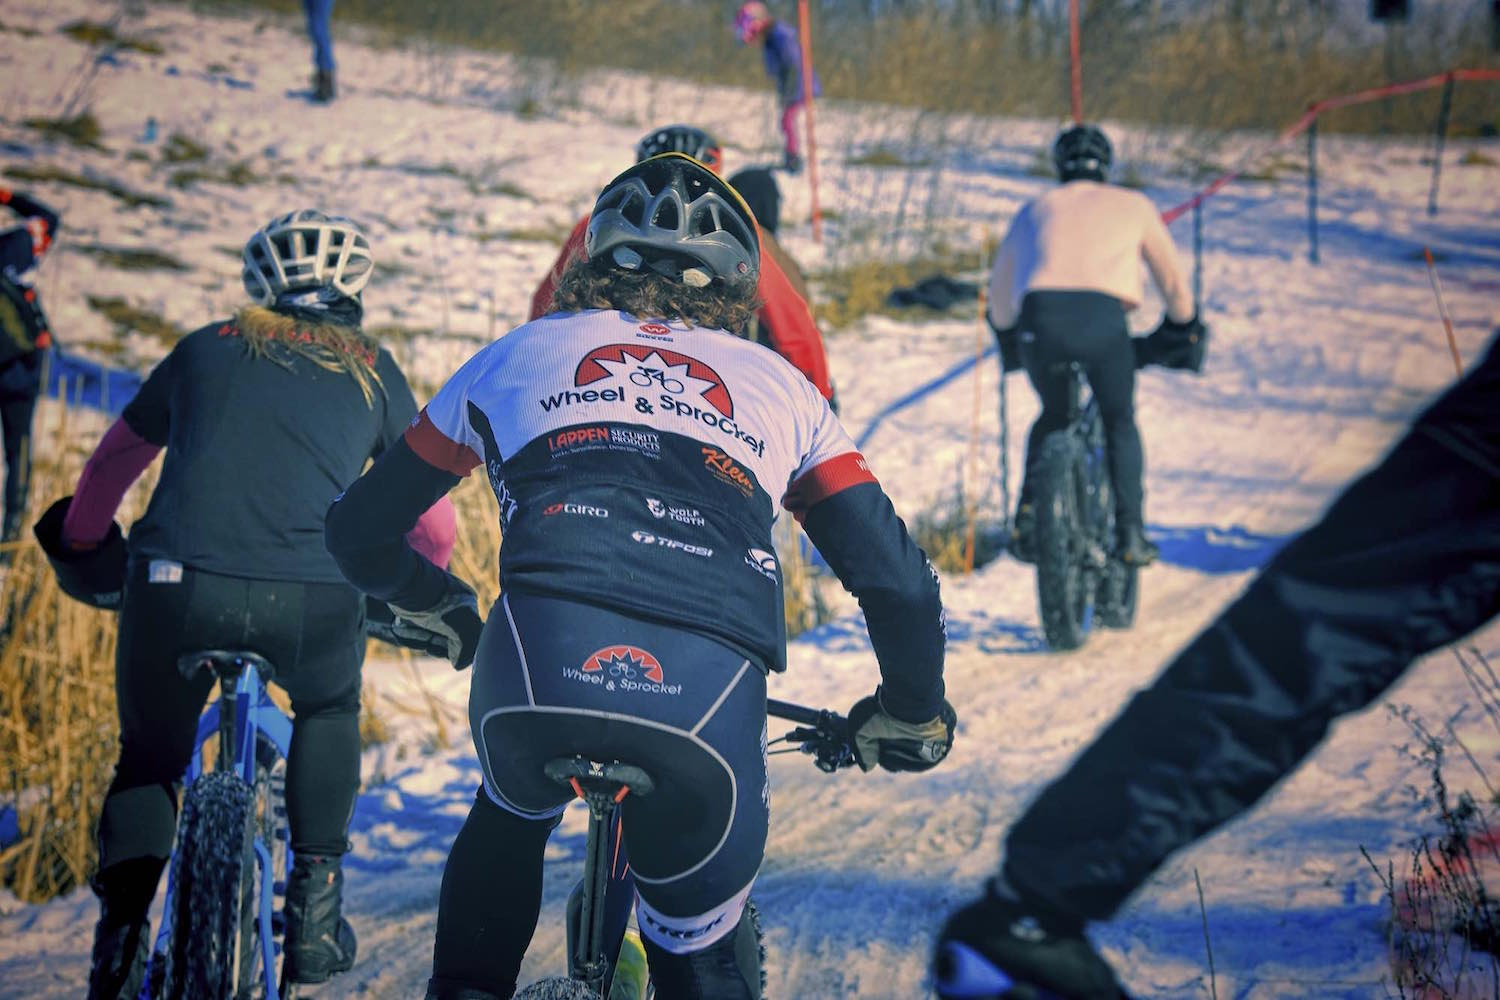 The fat bike peloton thunders down a straightaway at Lecker Park in Appleton, Wisconsin.